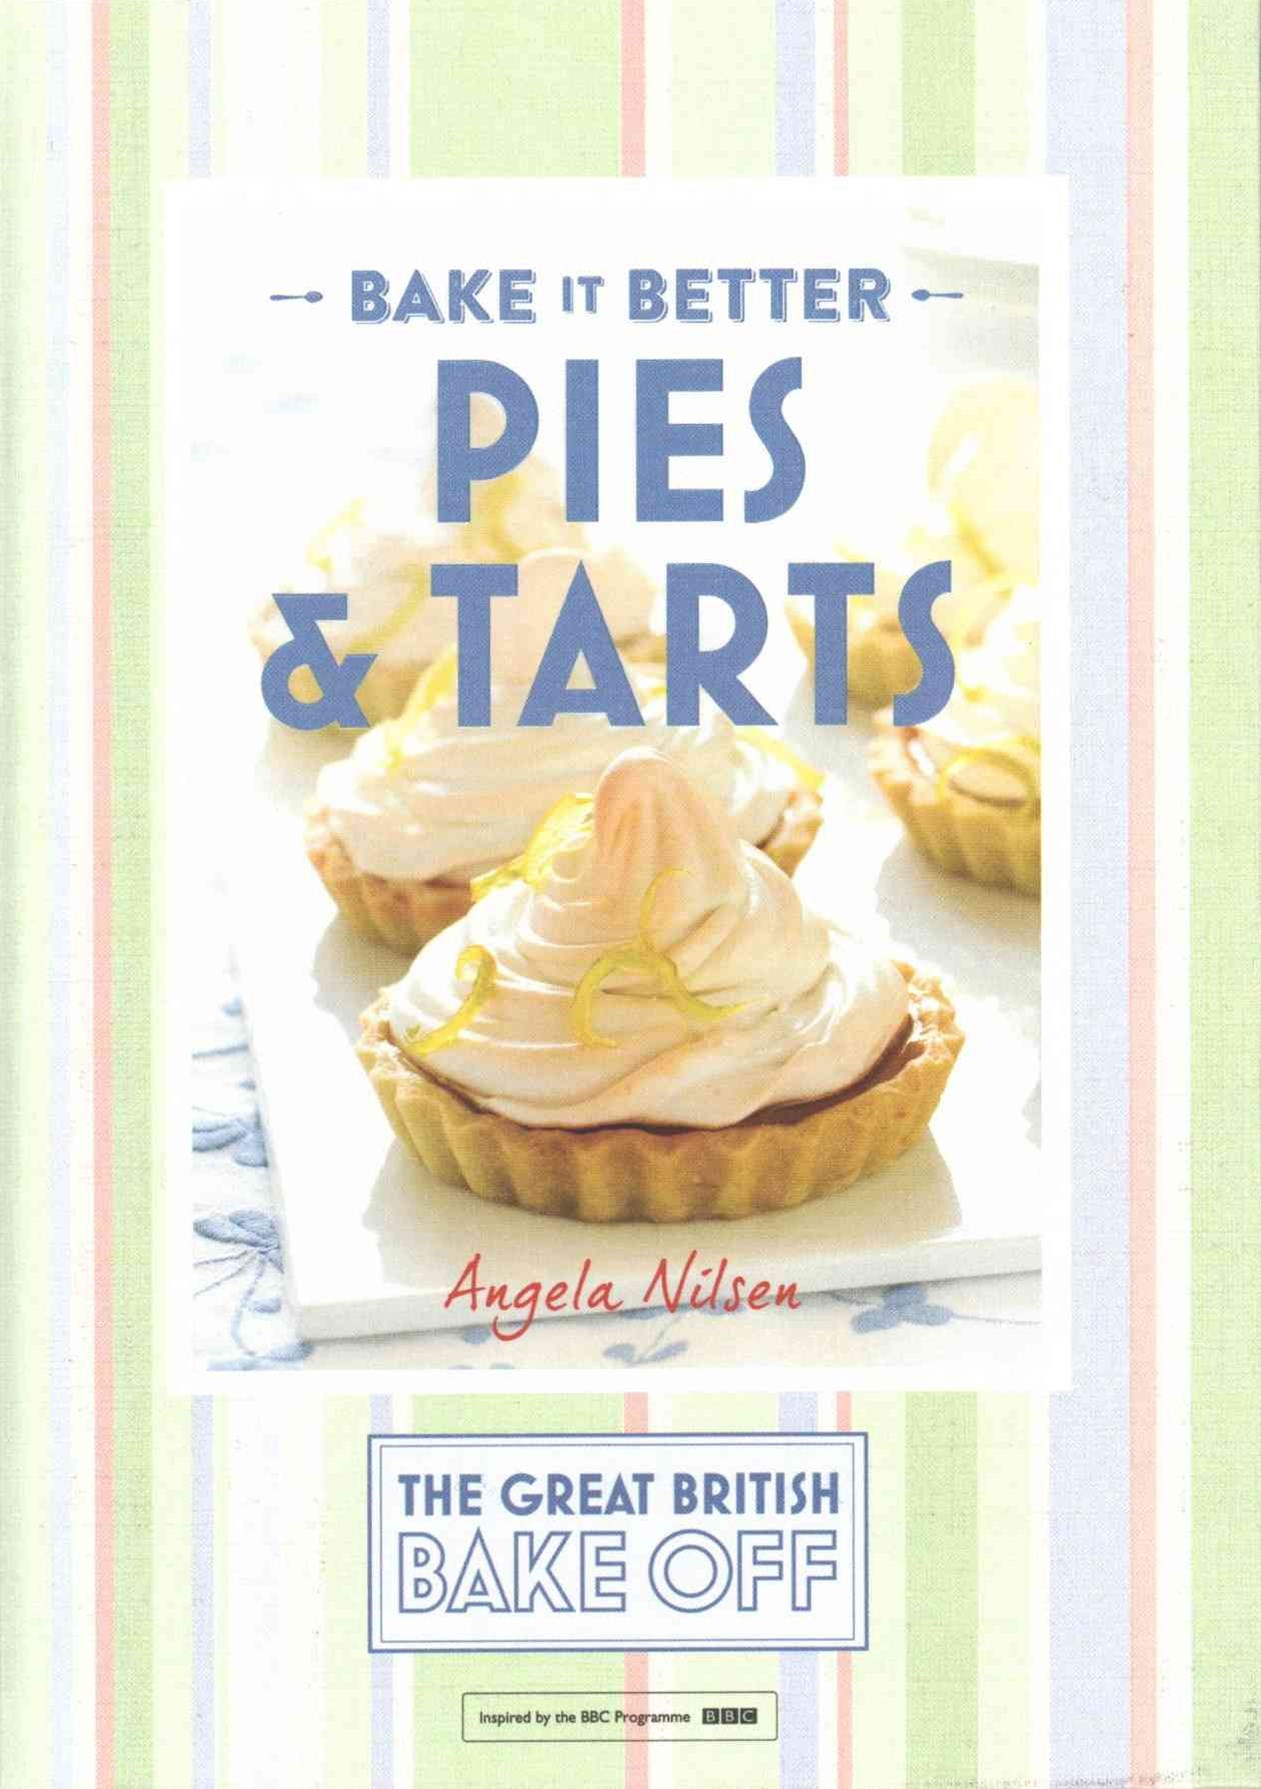 Great British Bake Off   Bake it Better (No.3): Pies & Tarts